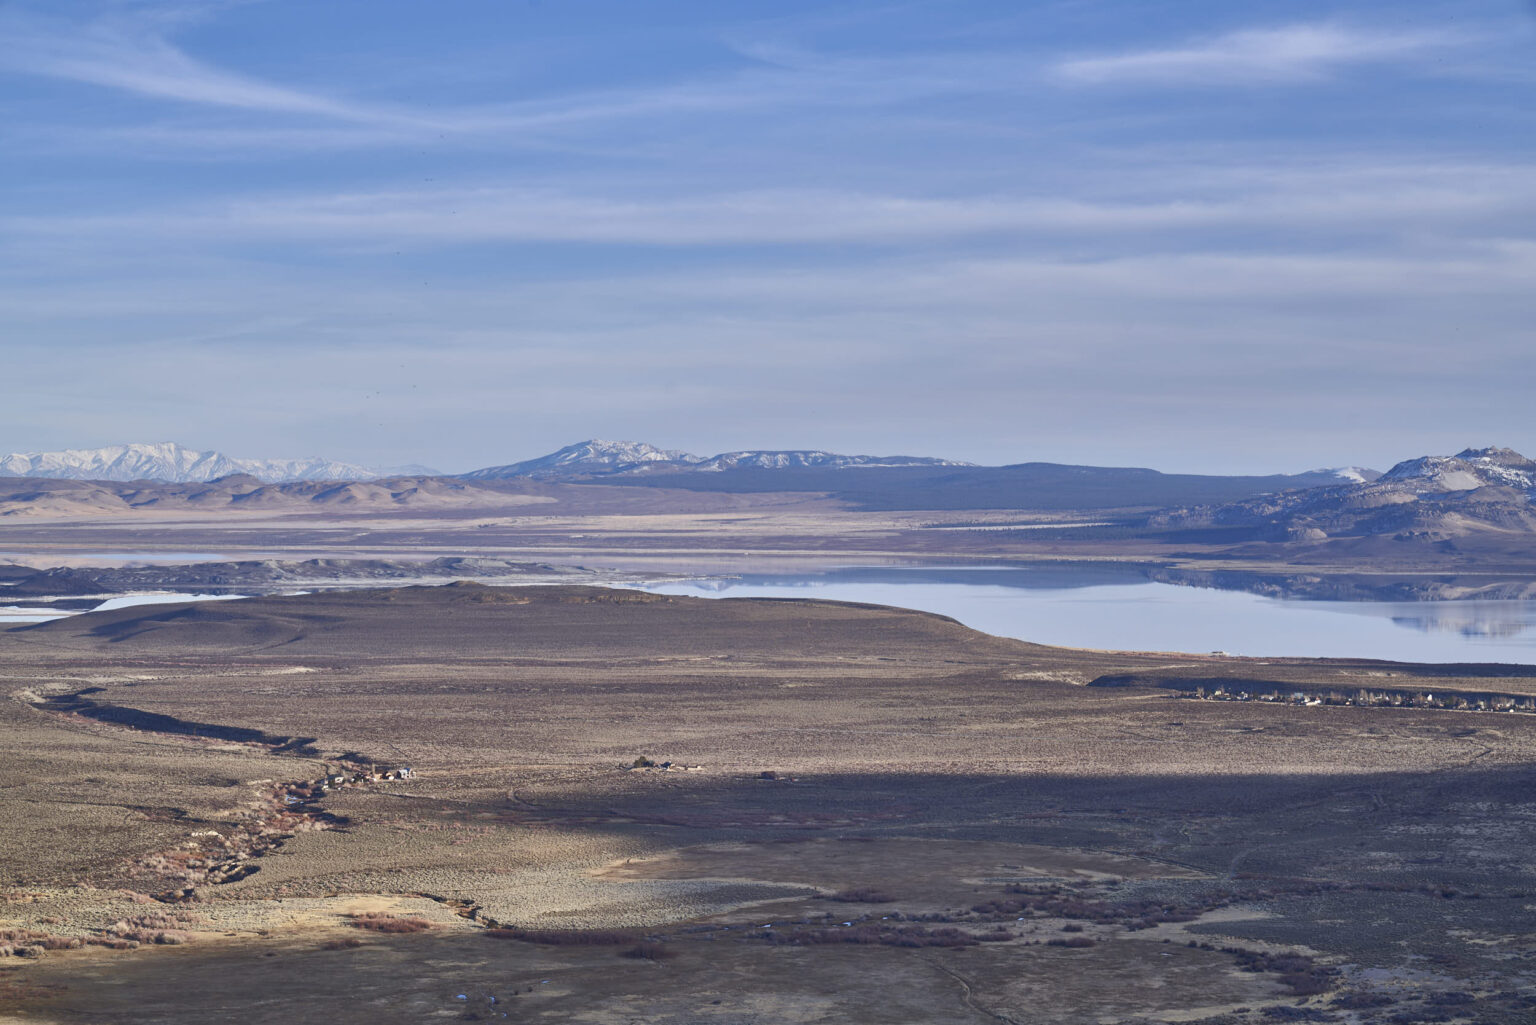 Mono Lake from the road